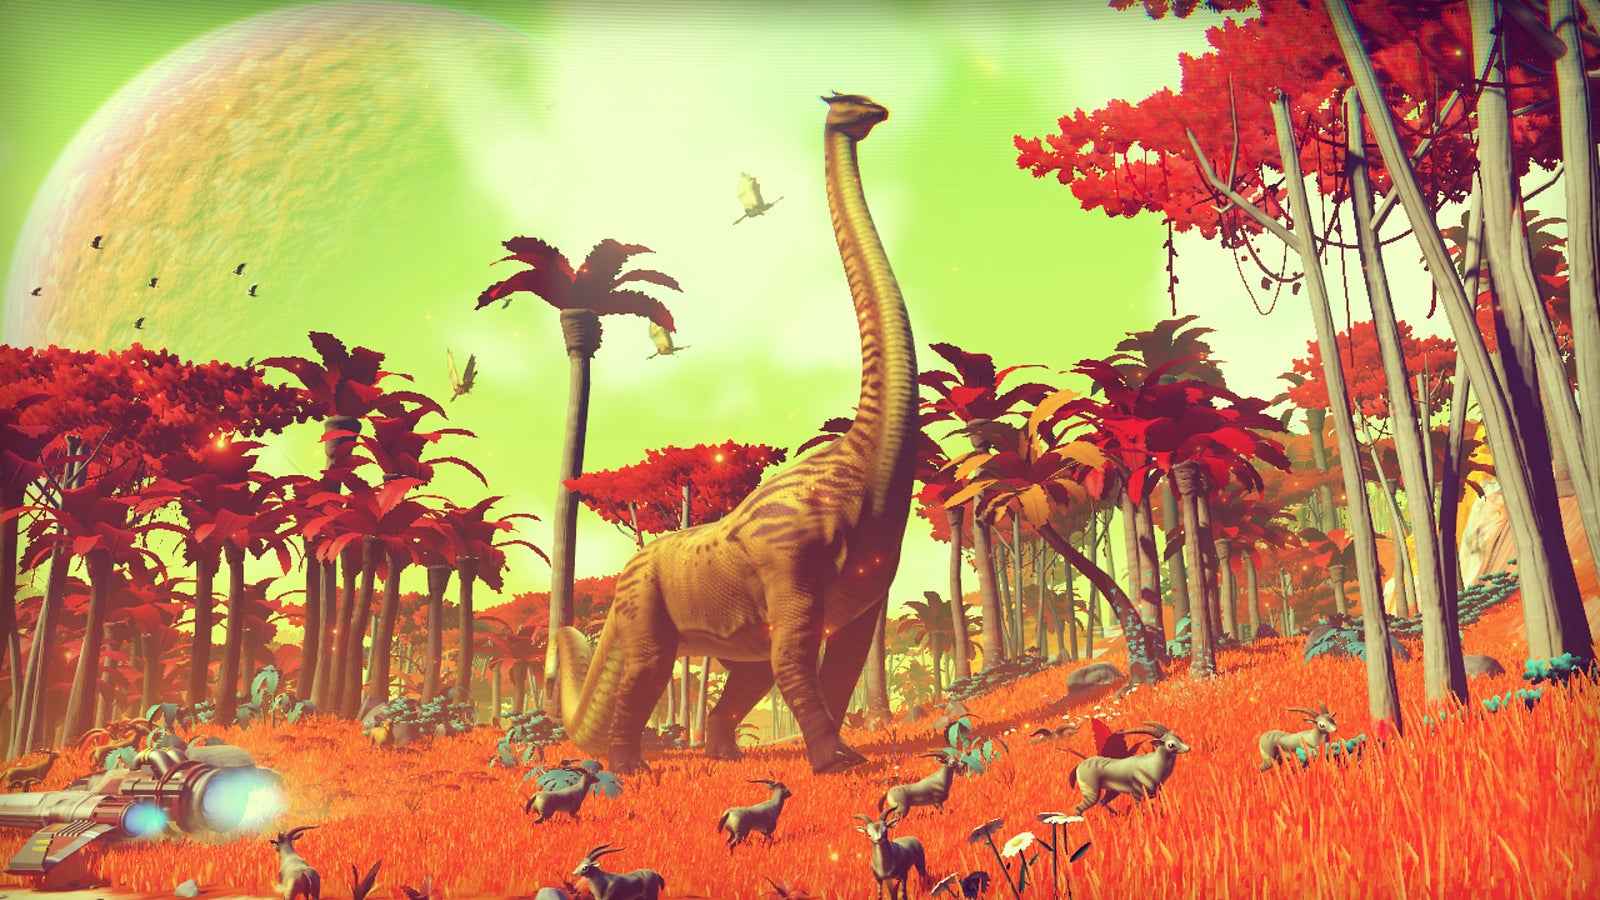 No Man's Sky Will Hit PC, But Only After PS4